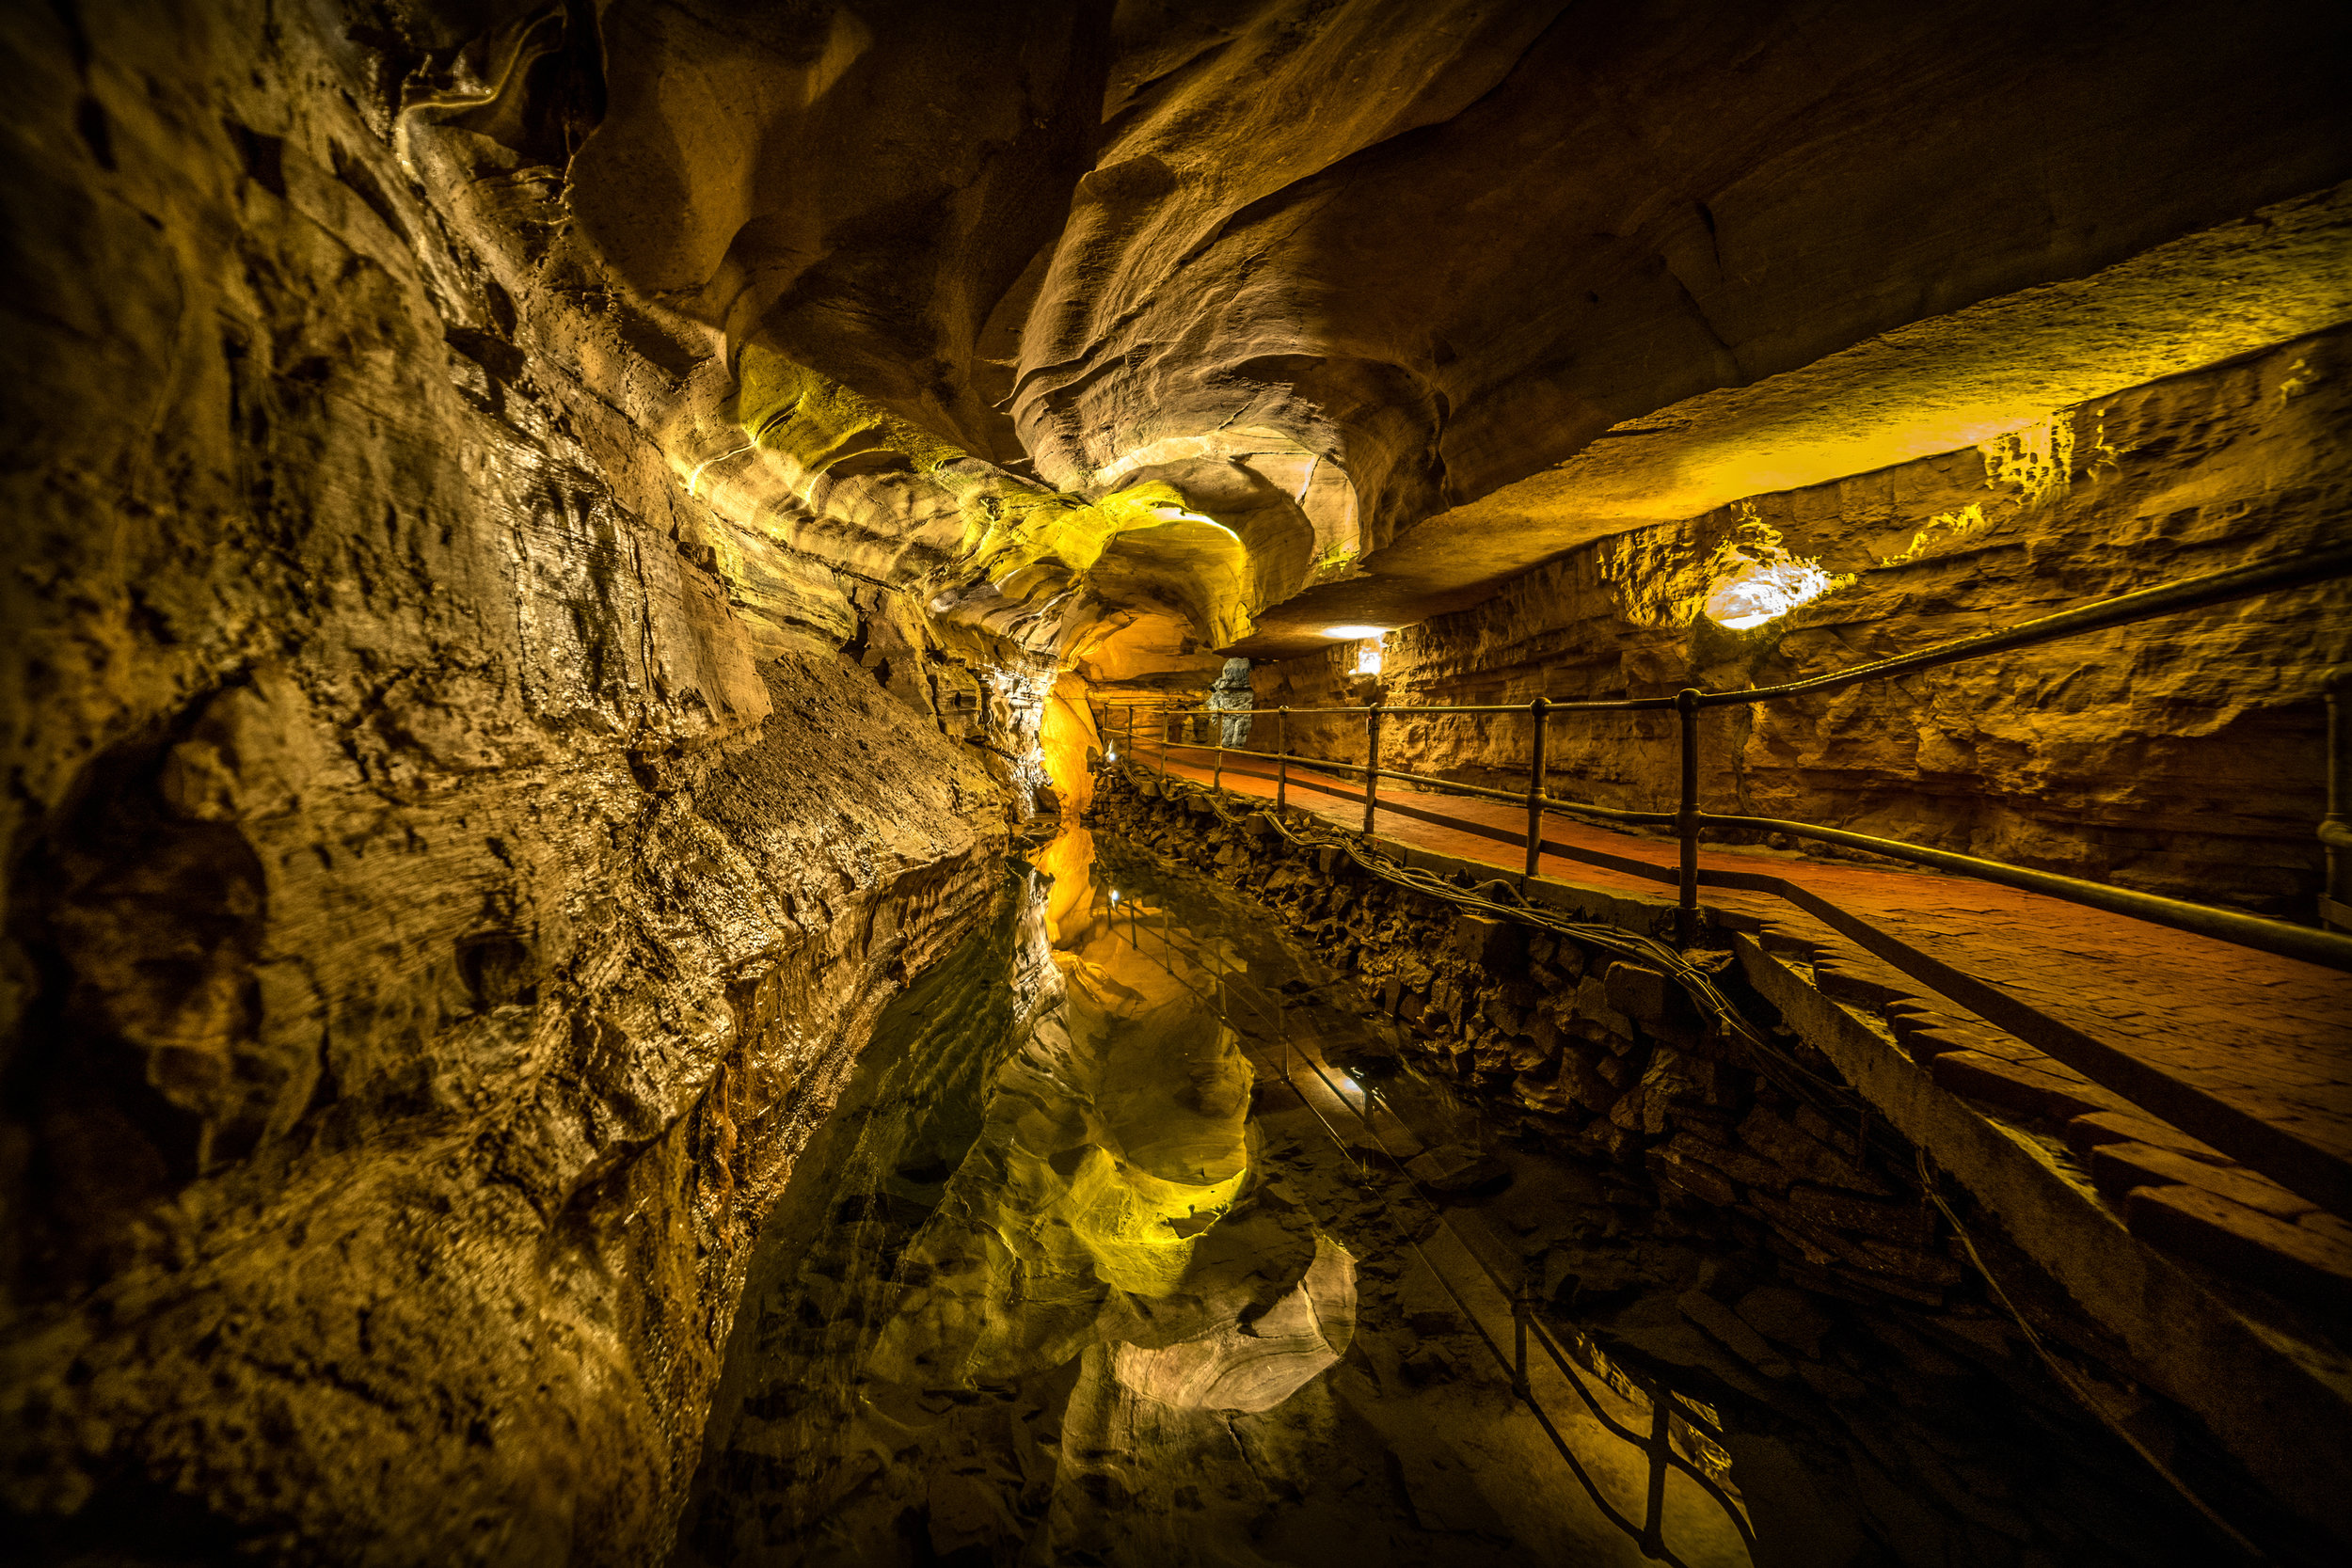 Howe Caverns, Inc.:  Premier world-famous attraction; guided cavern tours, gift & souvenir shop, homemade fudge, gemstone mining, snack bar, Motel, and more!